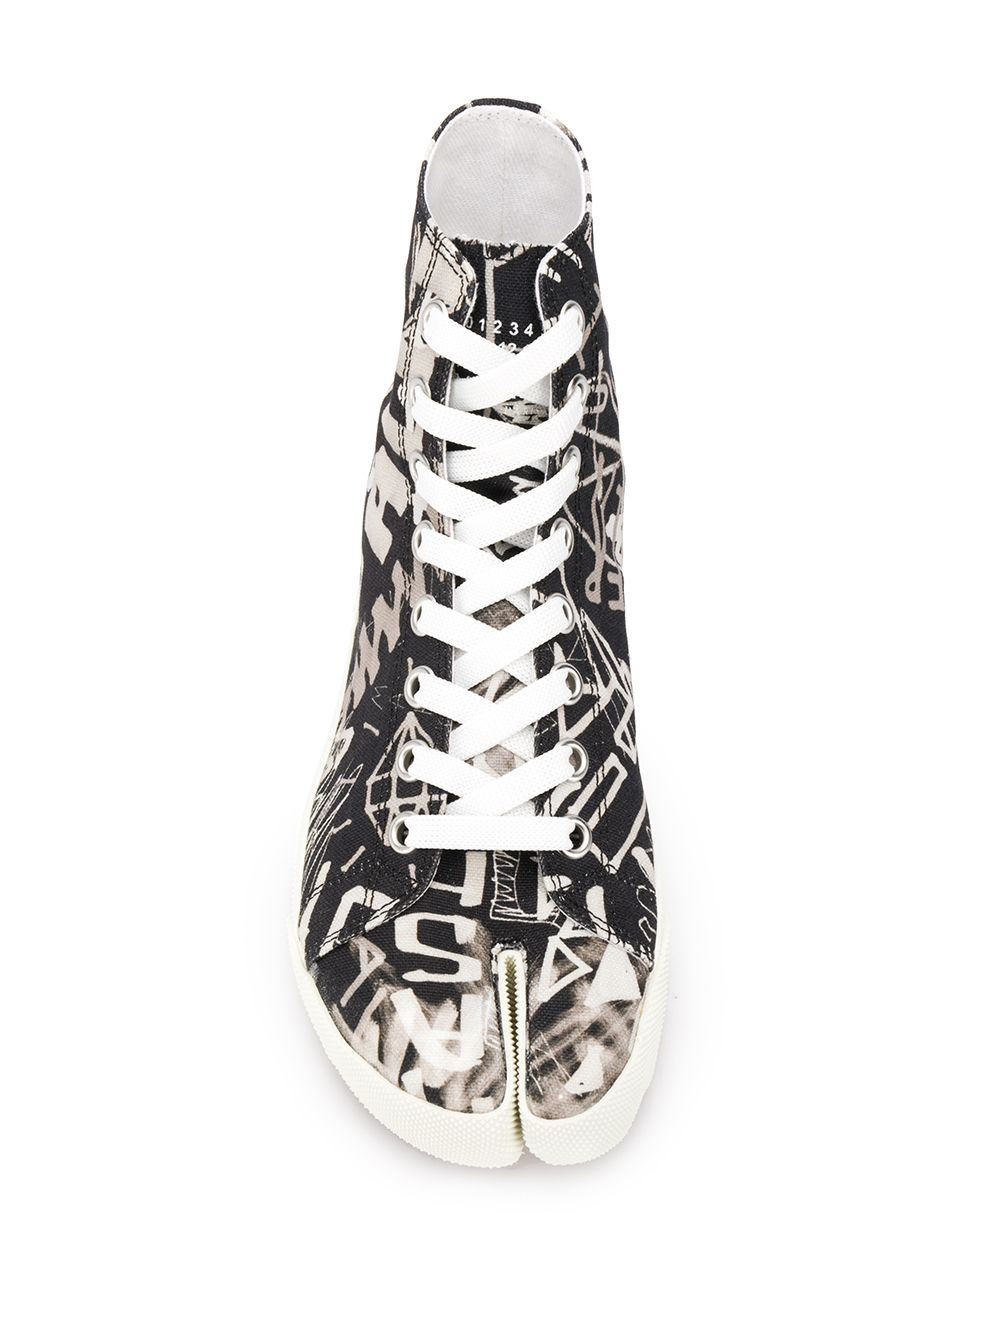 MAISON MARGIELA WOMEN GRAFFITI HIGH TOP TABI SNEAKERS